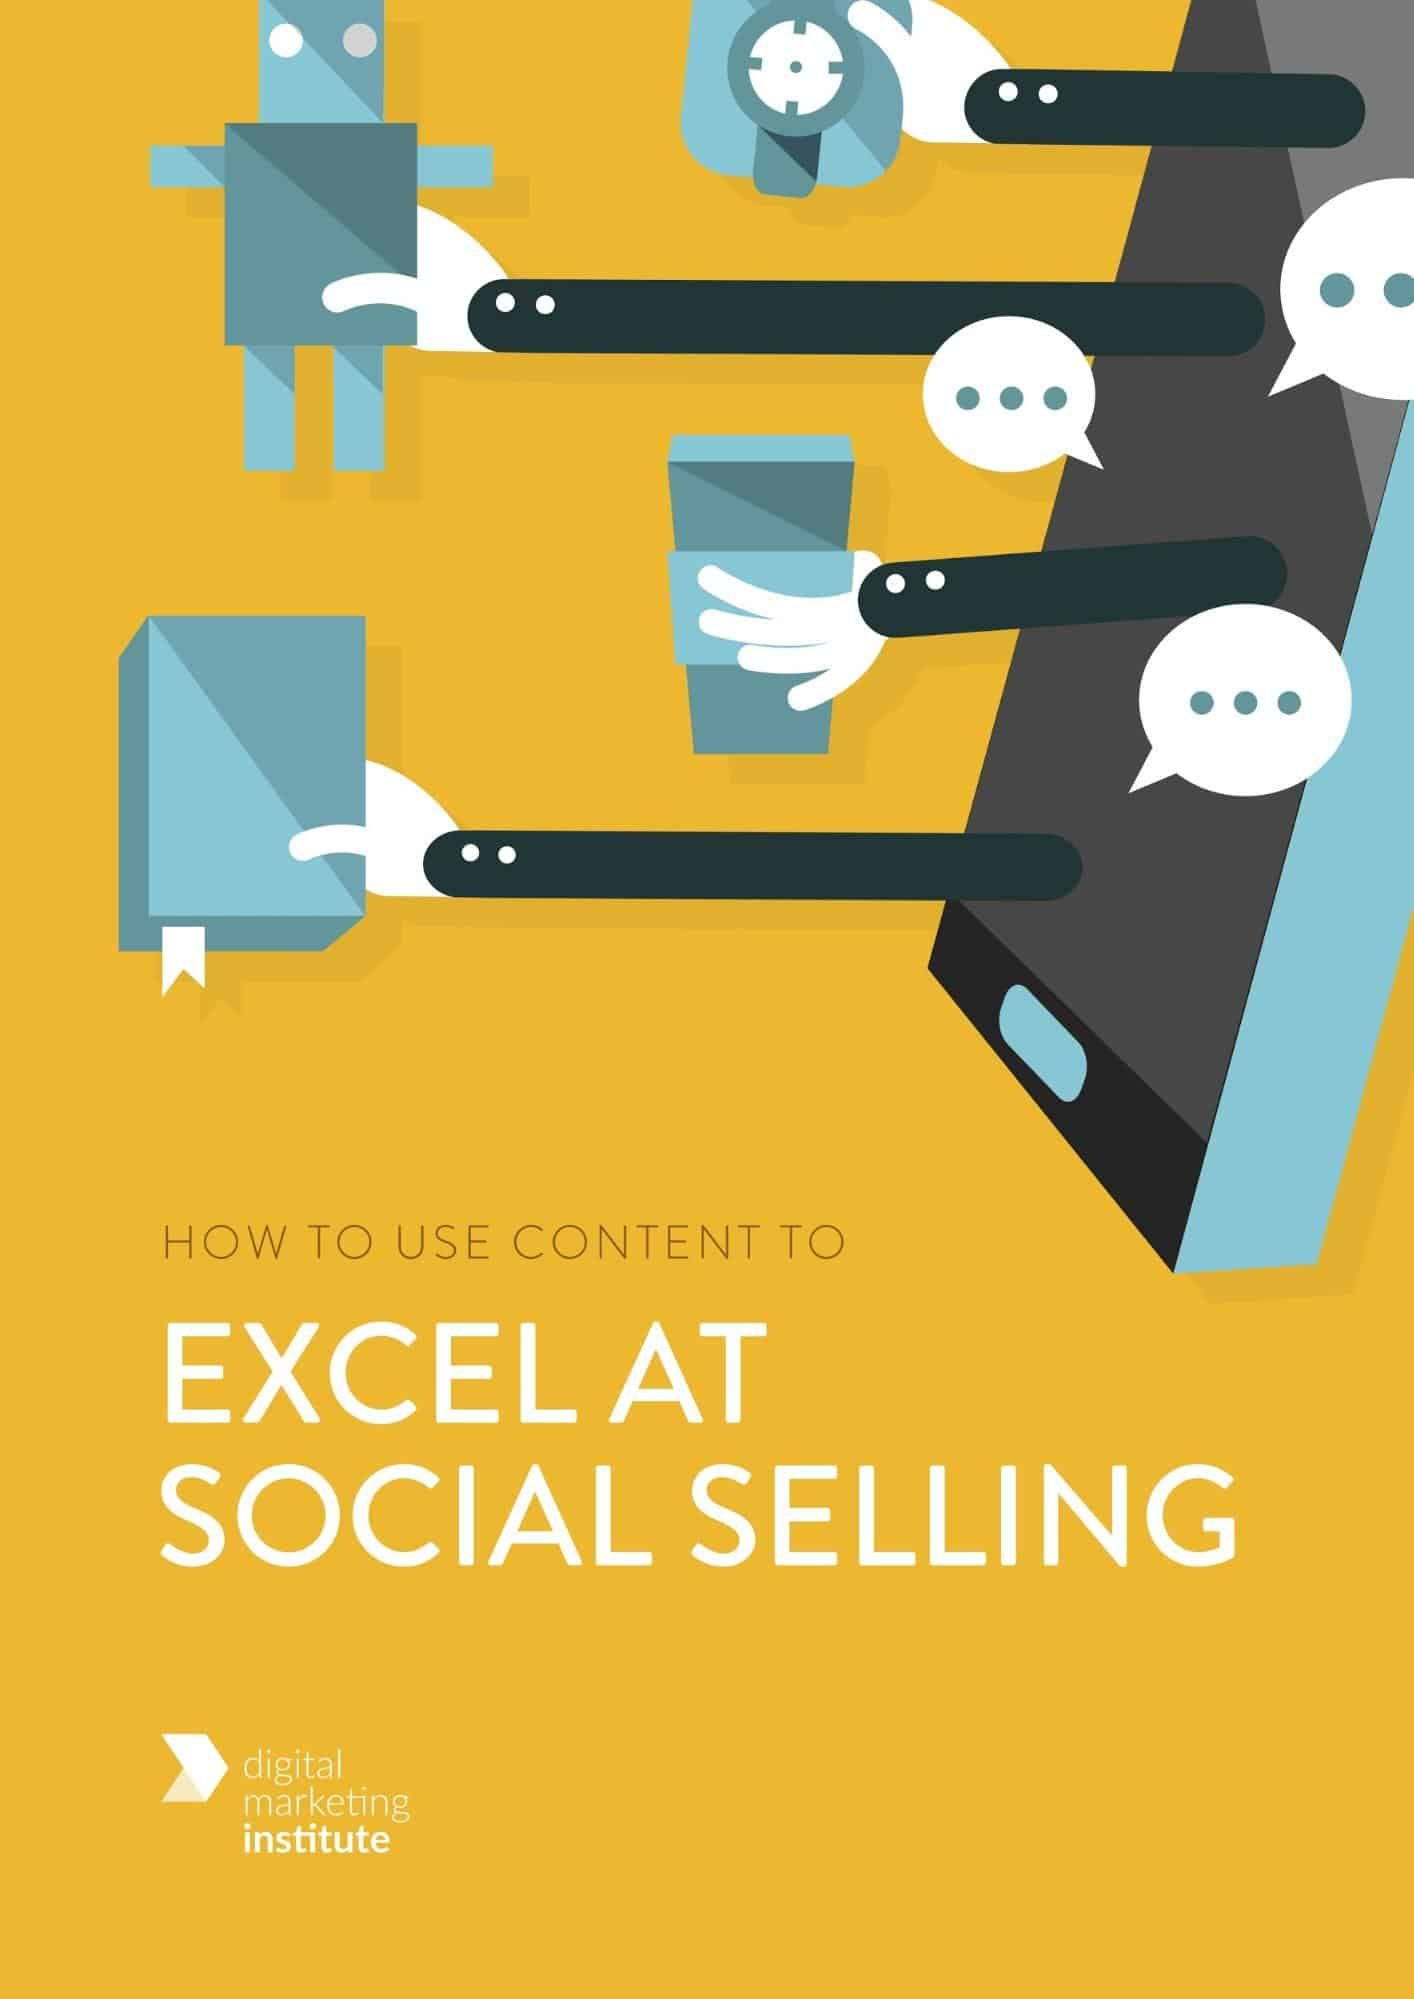 How to use content to excel at social selling free ebook, free ebook example